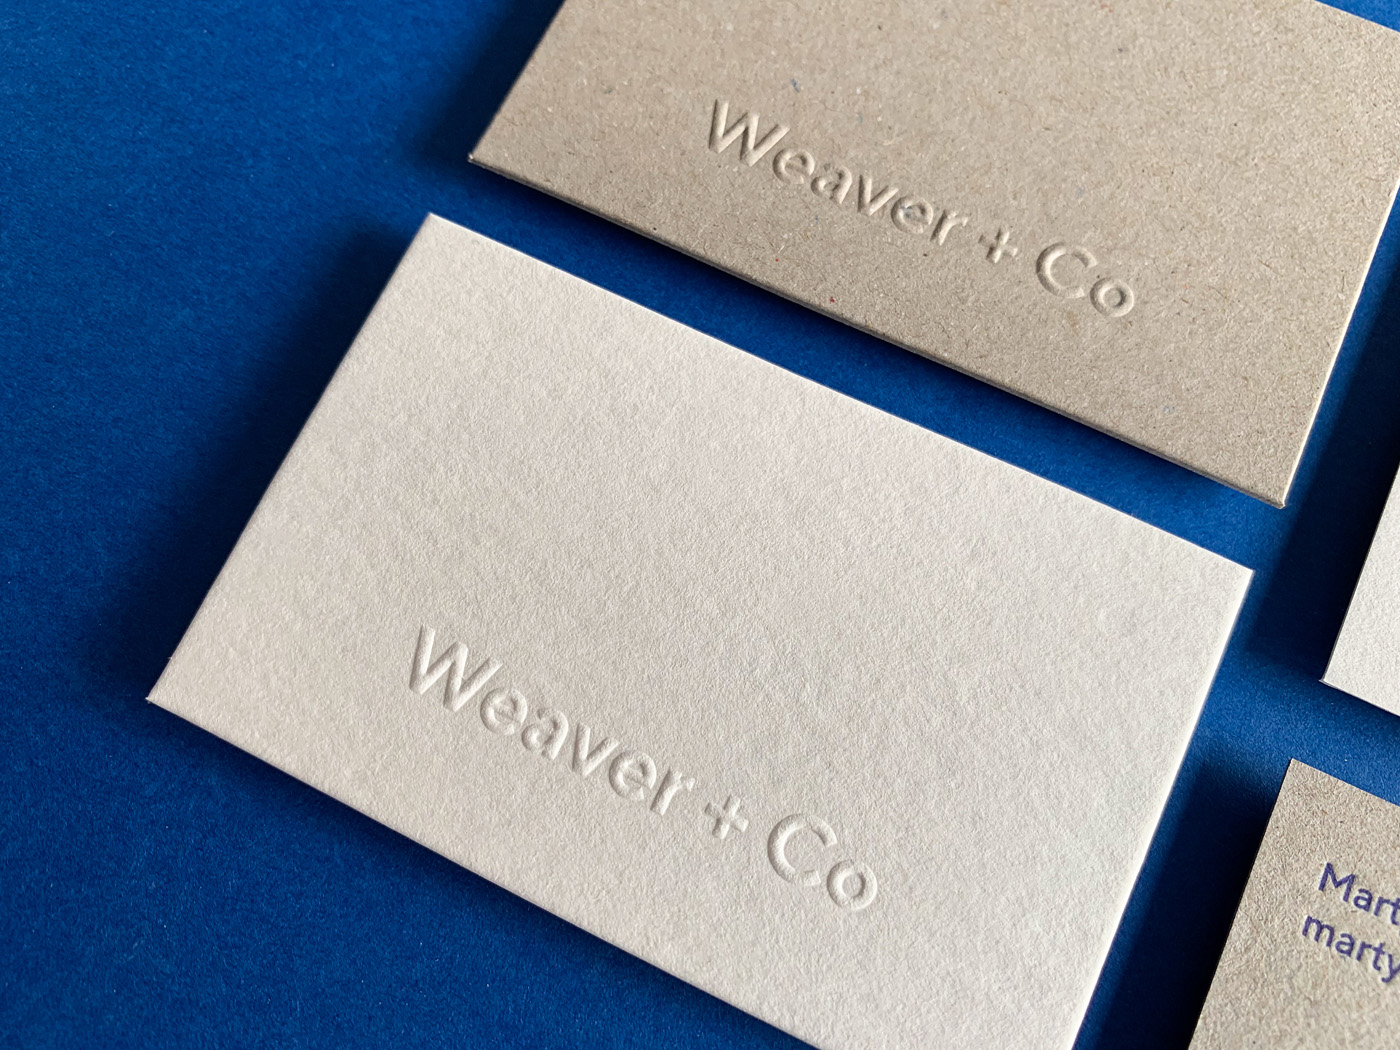 Letter pressed business cards for Martyn Weaver Co on Boxboard and Wild 3